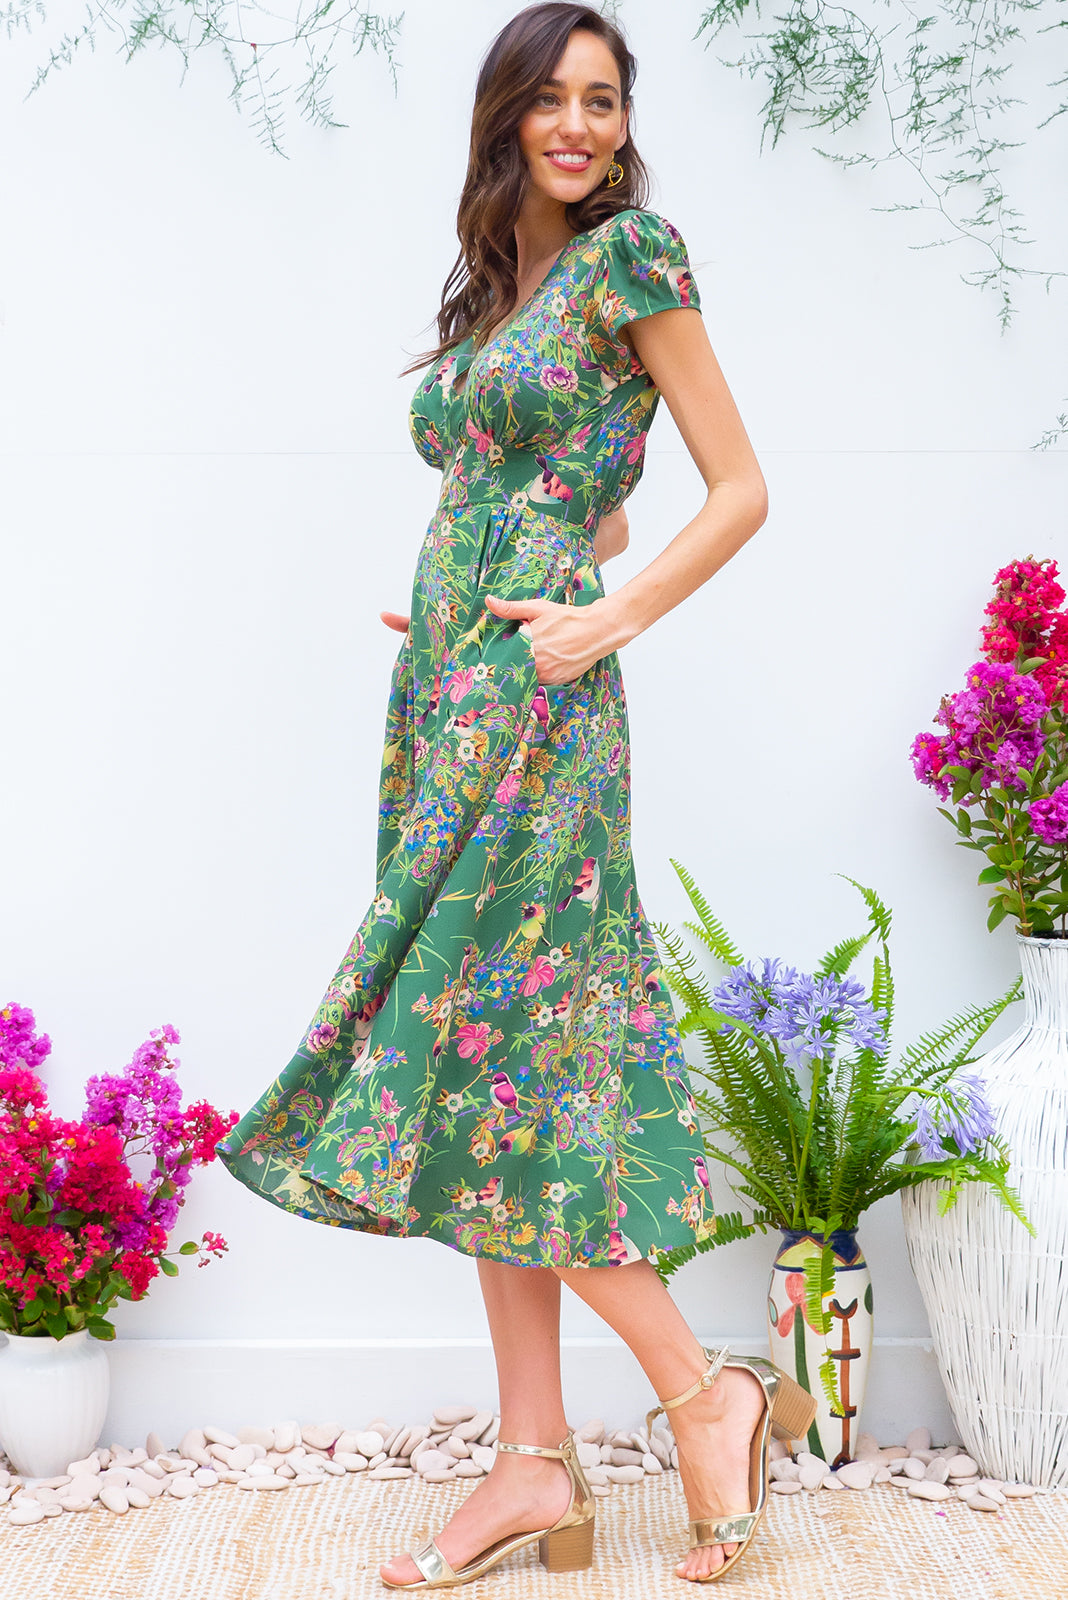 Lizzie Green Honey Eater Midi dress features a vintage inspired fitted basque waist and elasticated waist with a cap sleeve and deep v neck the fabric is a soft woven rayon in a forest green floral and bird print